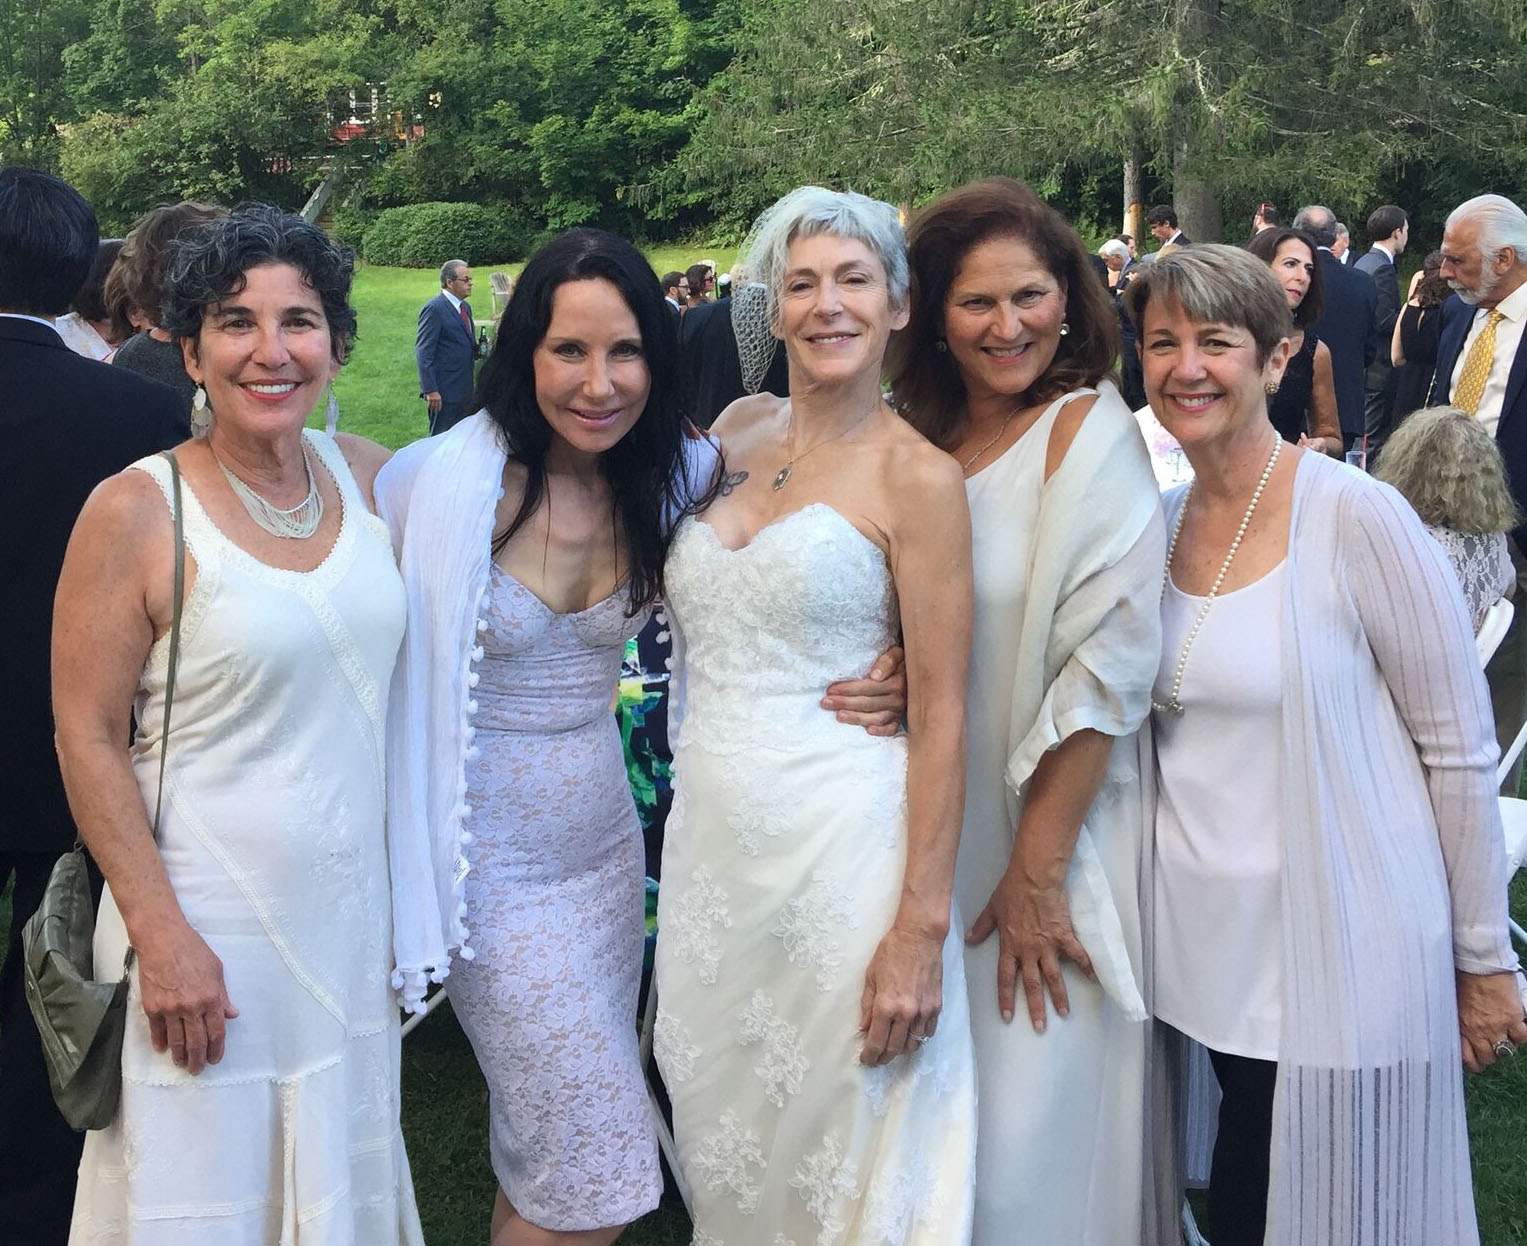 Betsy, Judi, Laurie, Jane, and Le